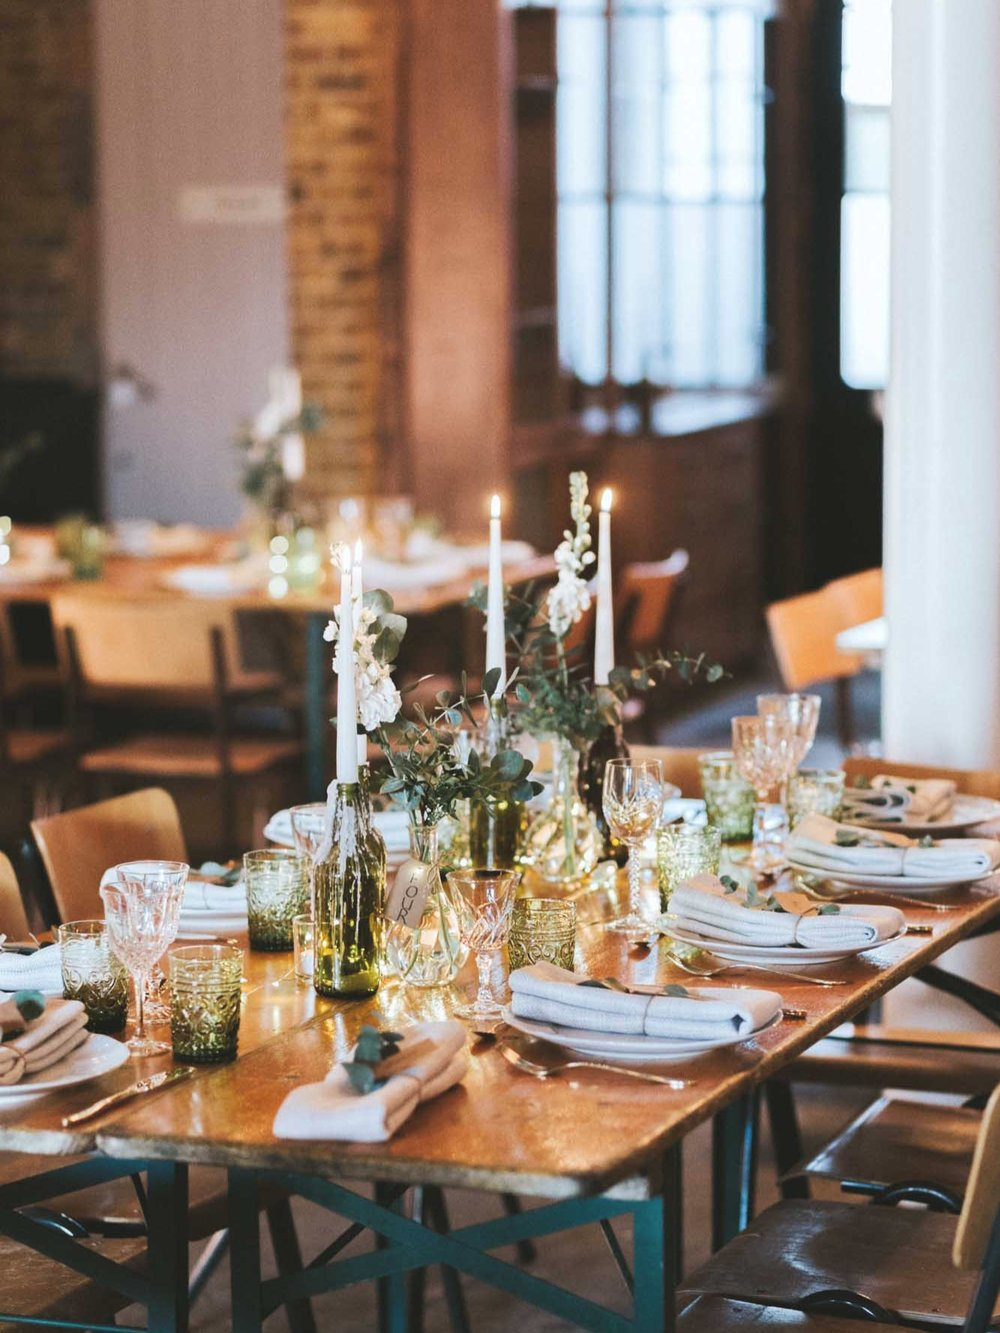 WEDDINGS & PRIVATE PARTIES - Delivering sensational food and front of house service to make your special day run smoothly. We focus on:WeddingsCorporate EventsPrivate Parties